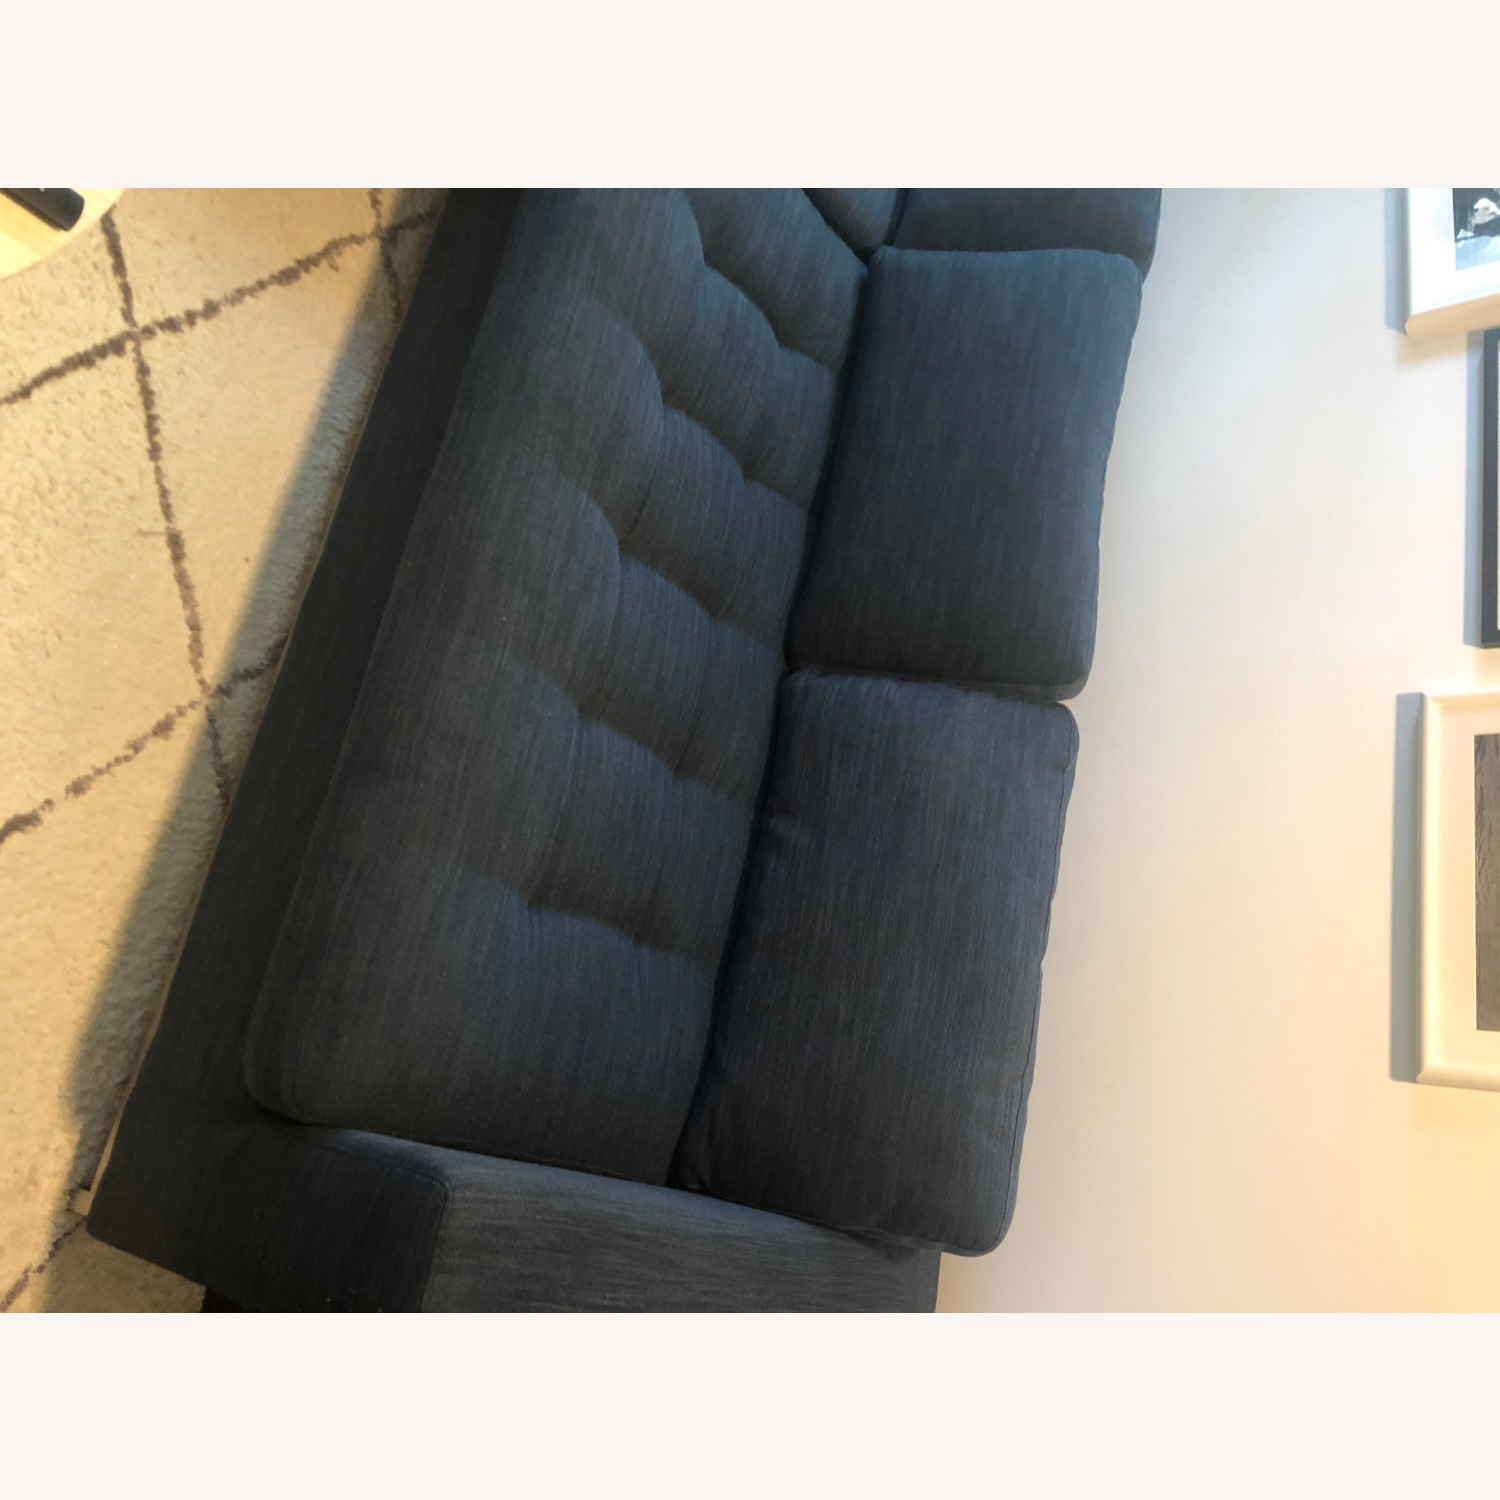 Article Soma Midnight Blue Sleeper Sectional Sofa - image-12